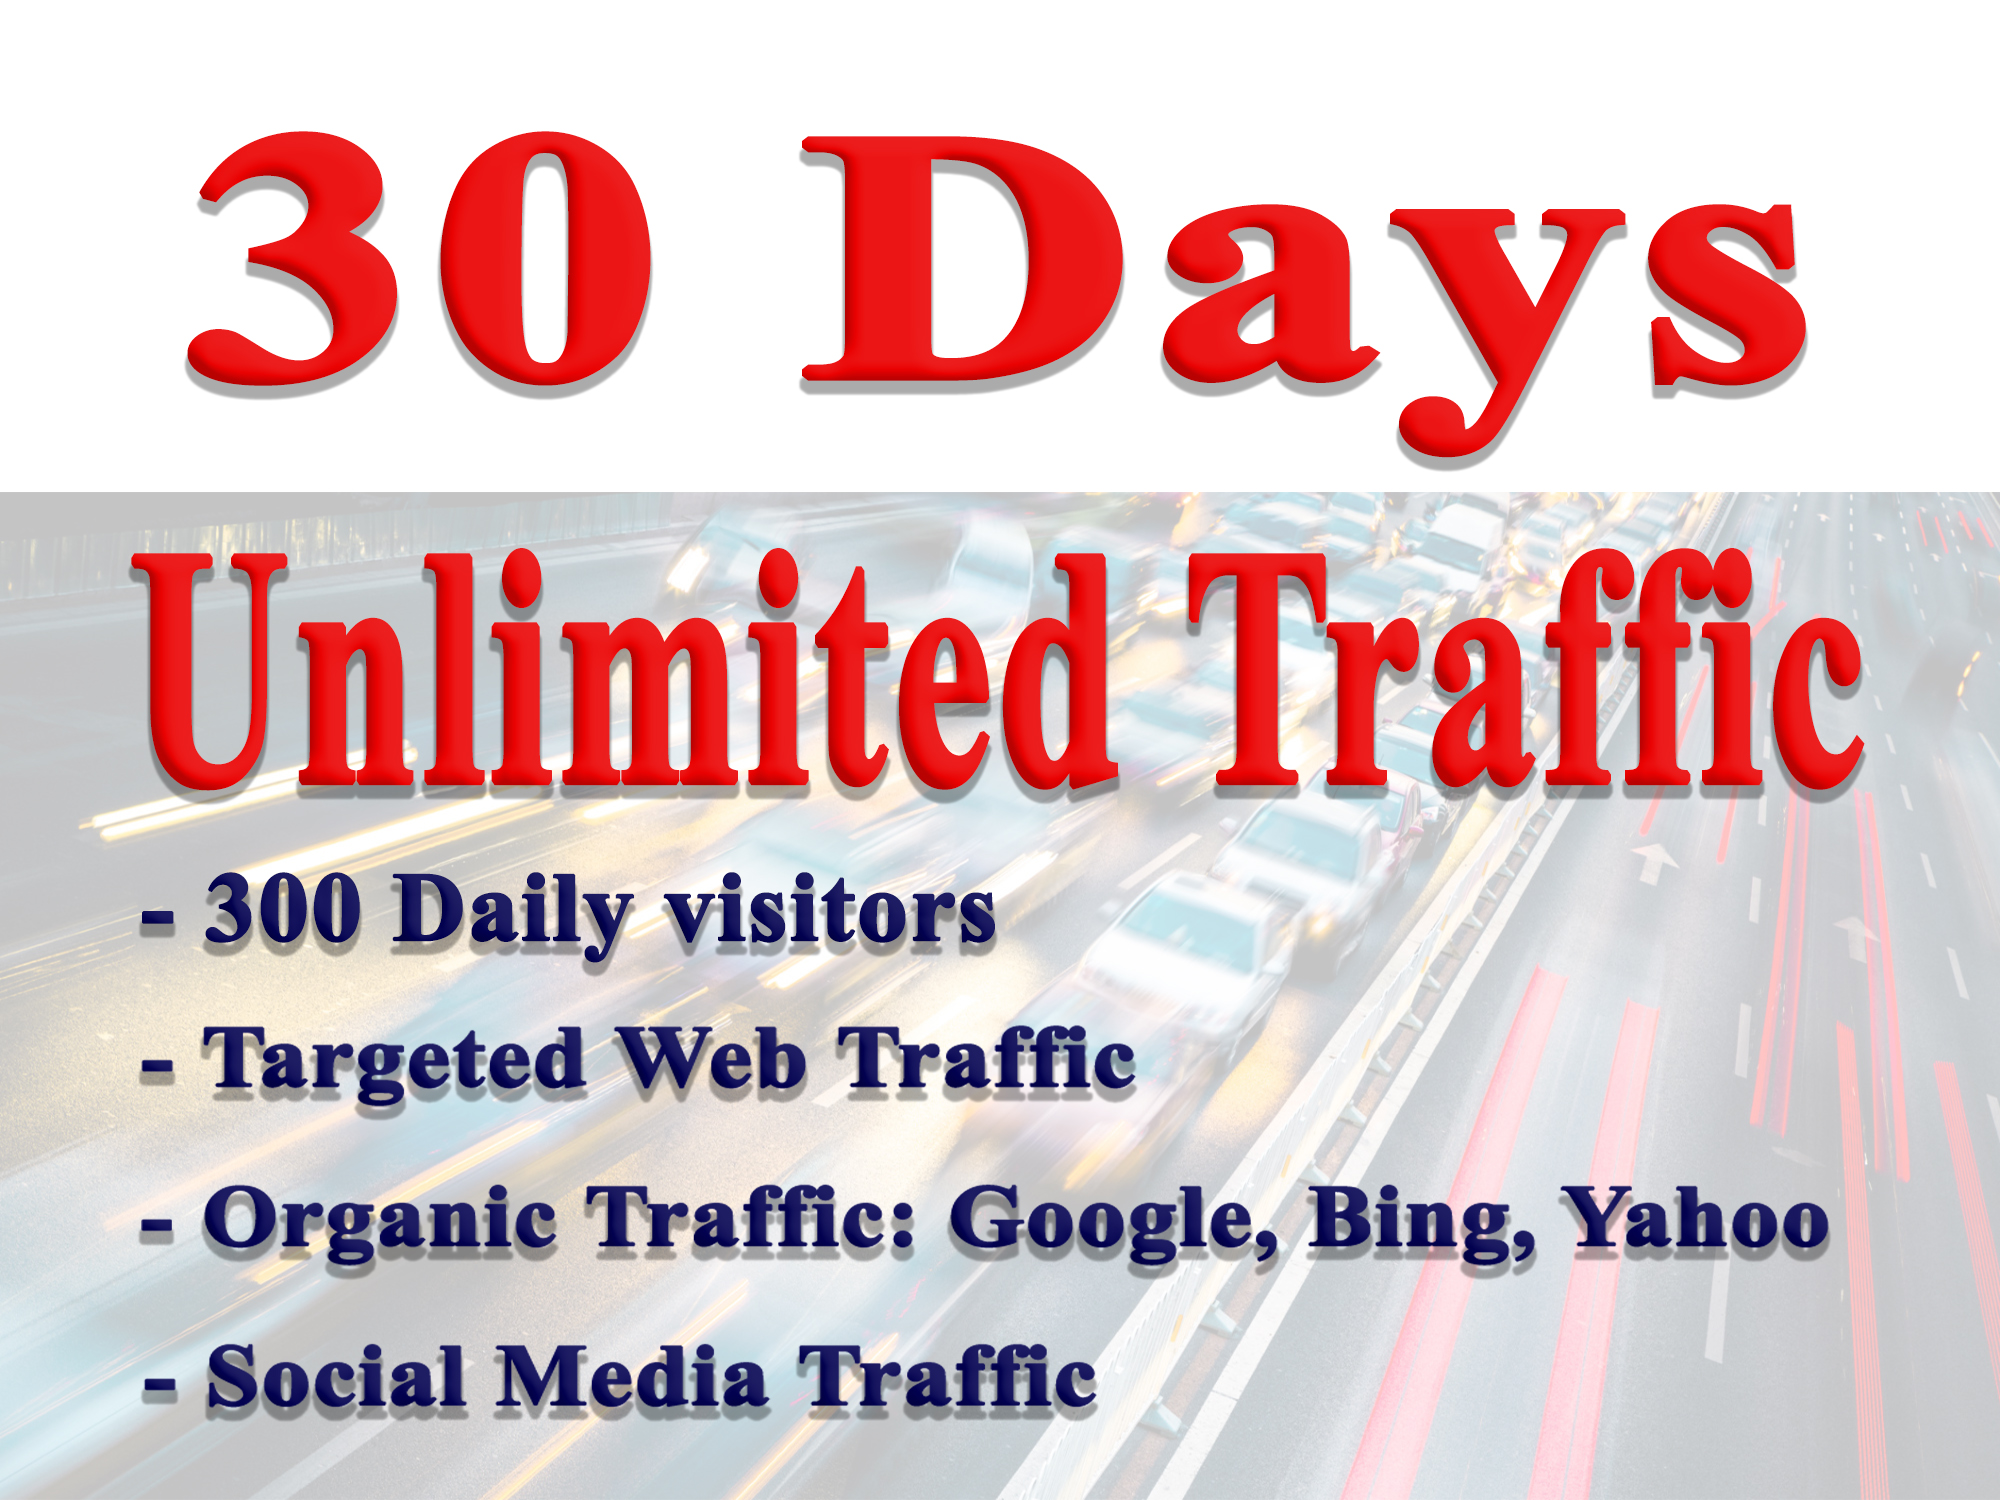 get 30 Days UNLlMITED Web Traffic, Targeted and Safe